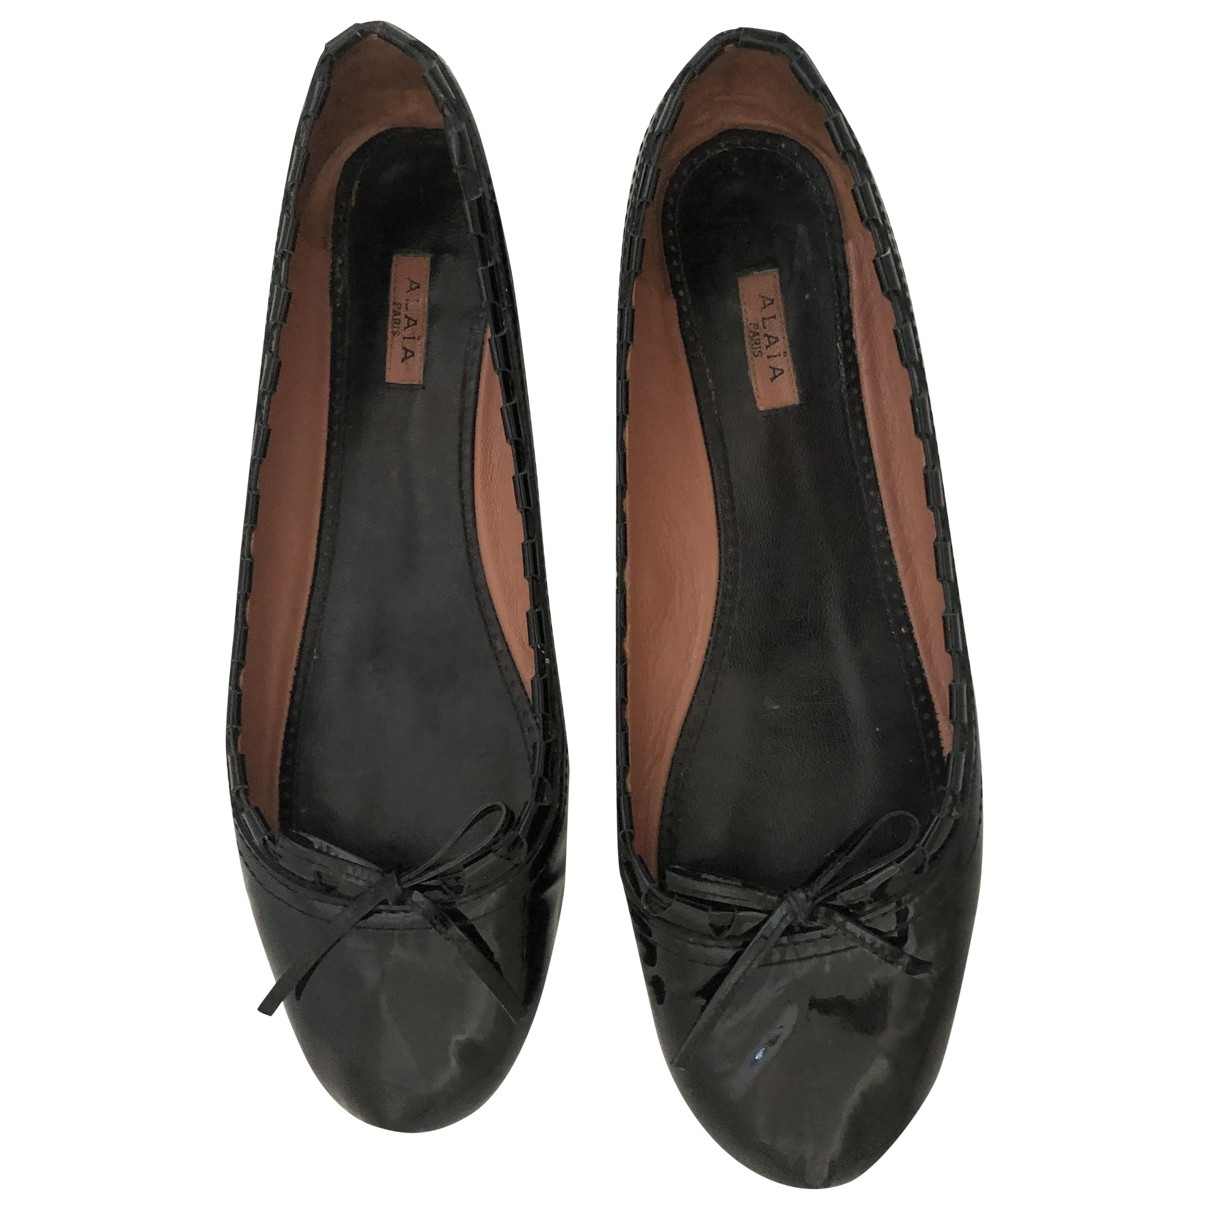 Alaia \N Ballerinas in  Schwarz Lackleder